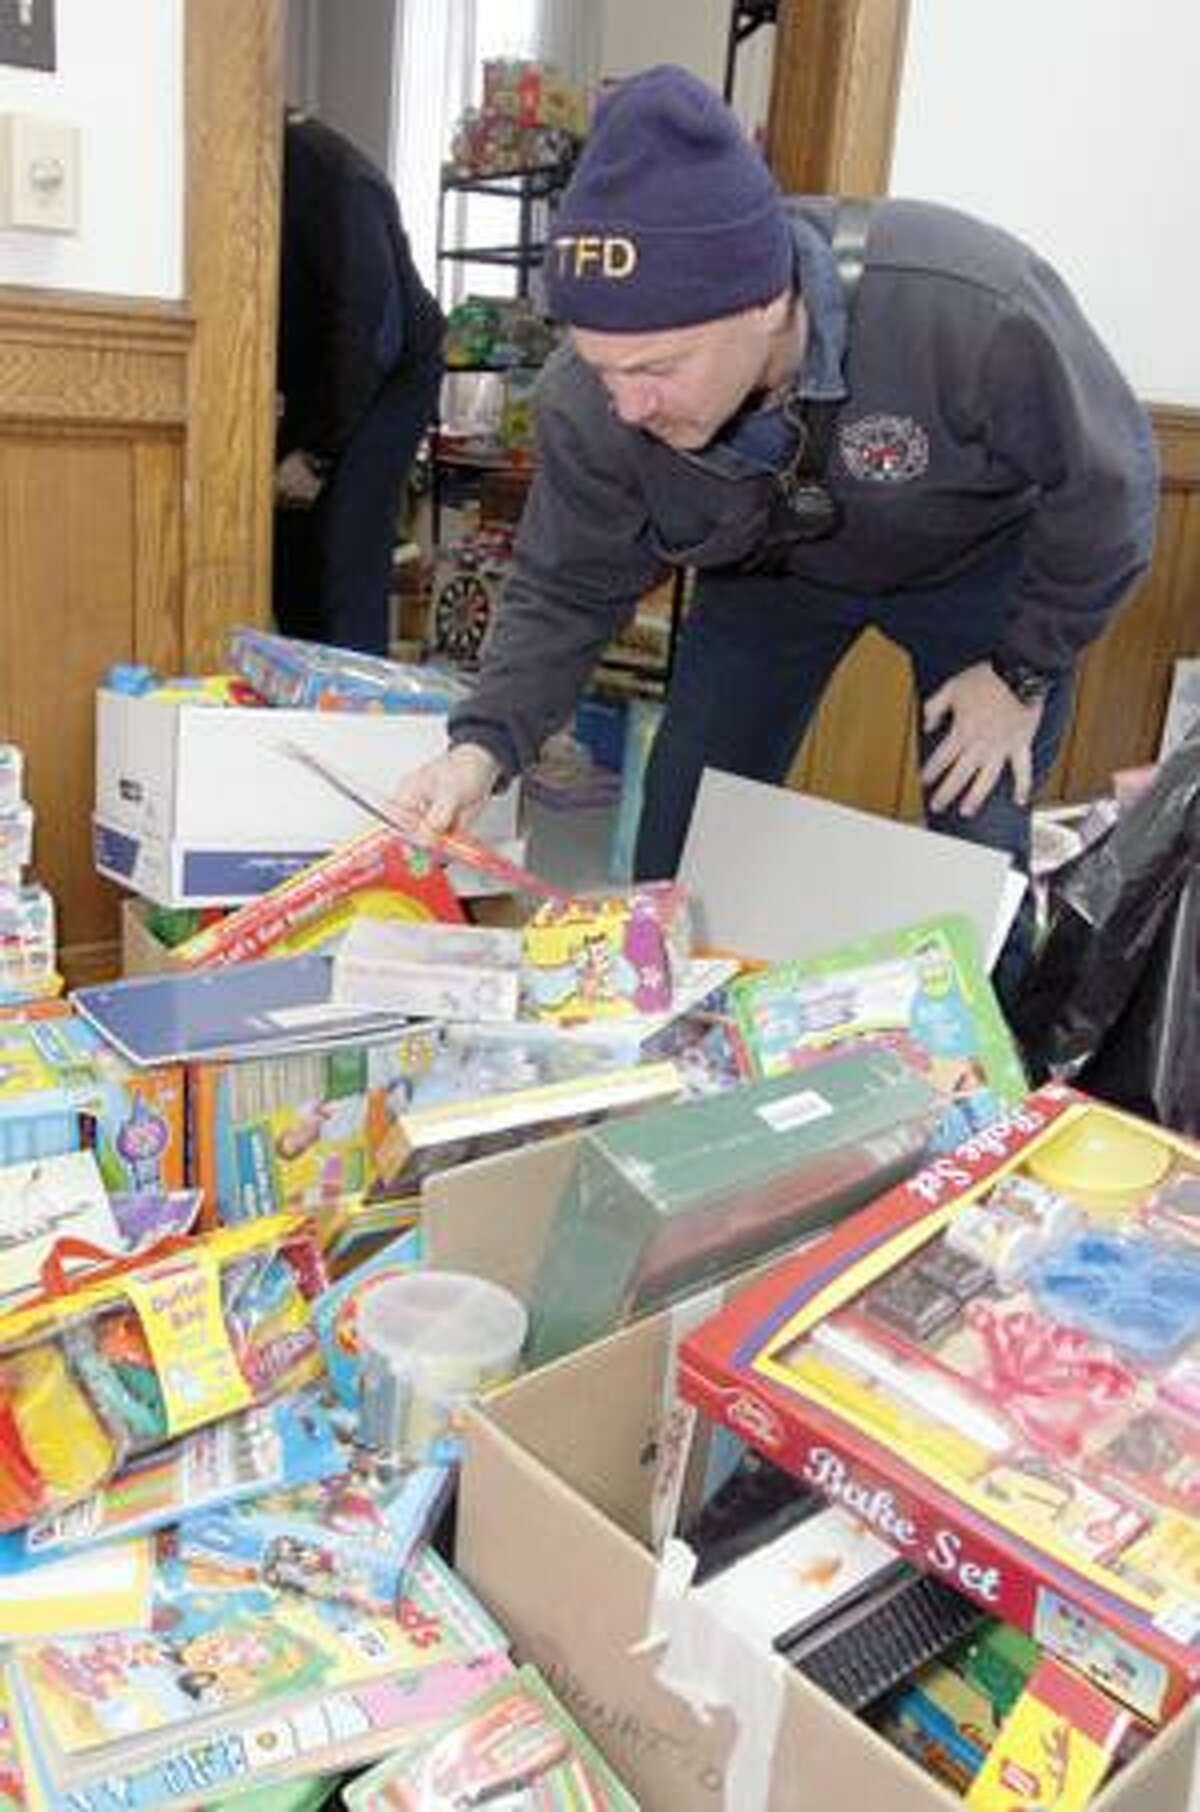 SONJA ZINKE/Register CitizenAndy Corjulo of the Torrington Fire Department was on hand with other members from the department to help sort and pack the thousands of toys being put together for families this Christmas from FISH Inc. The sorting took place on Church Street in Torrington Saturday. Families will be picking up their toys early next week. Purchase a glossy print of this photo and more at www.registercitizen.com